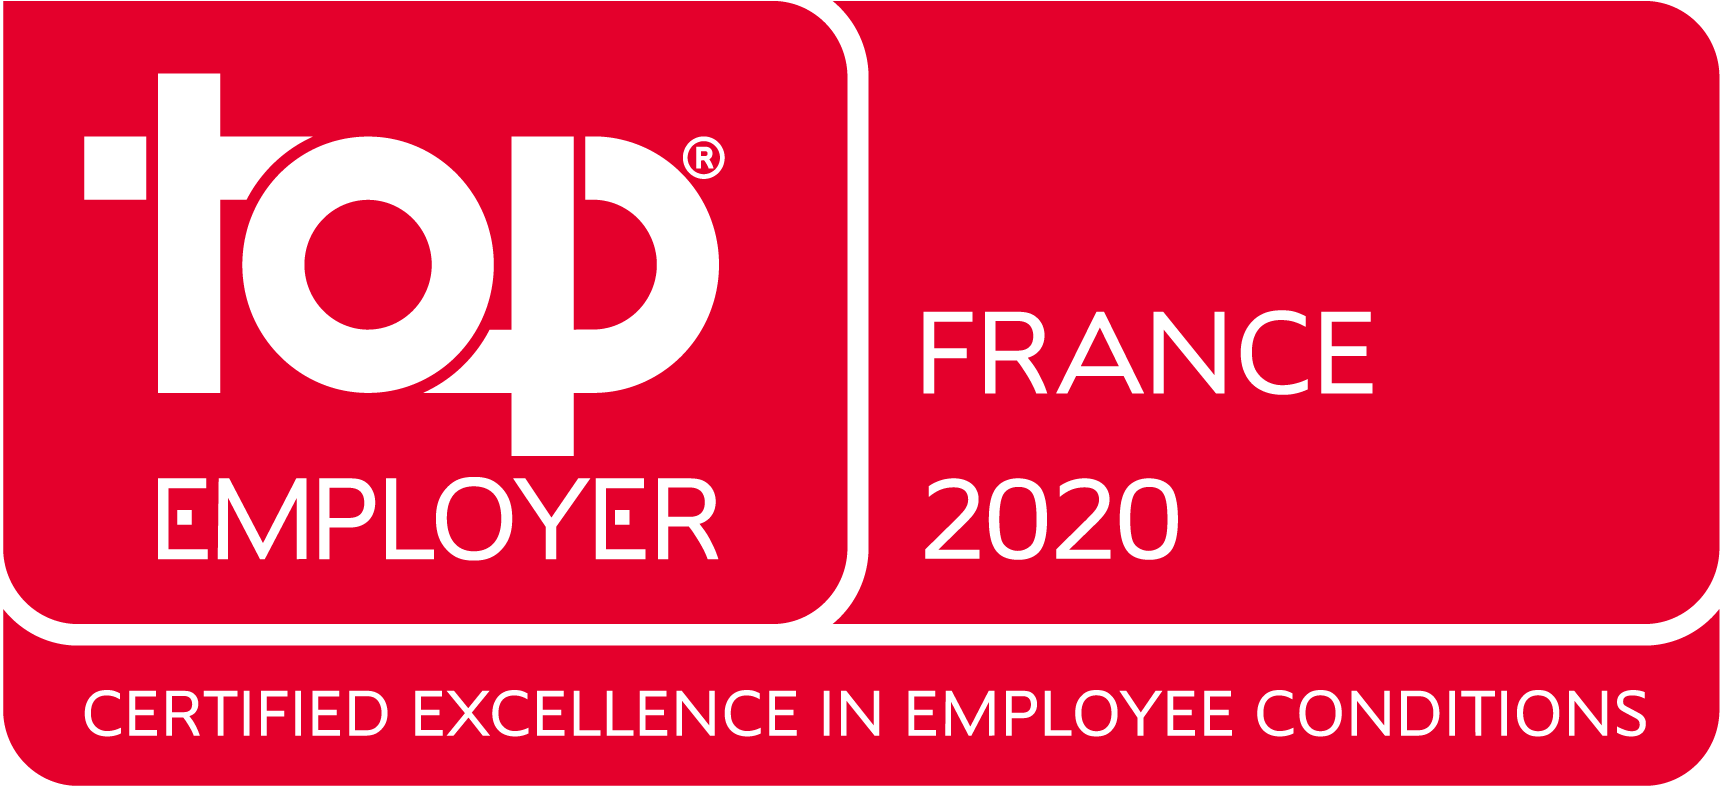 Top Employer France 2020